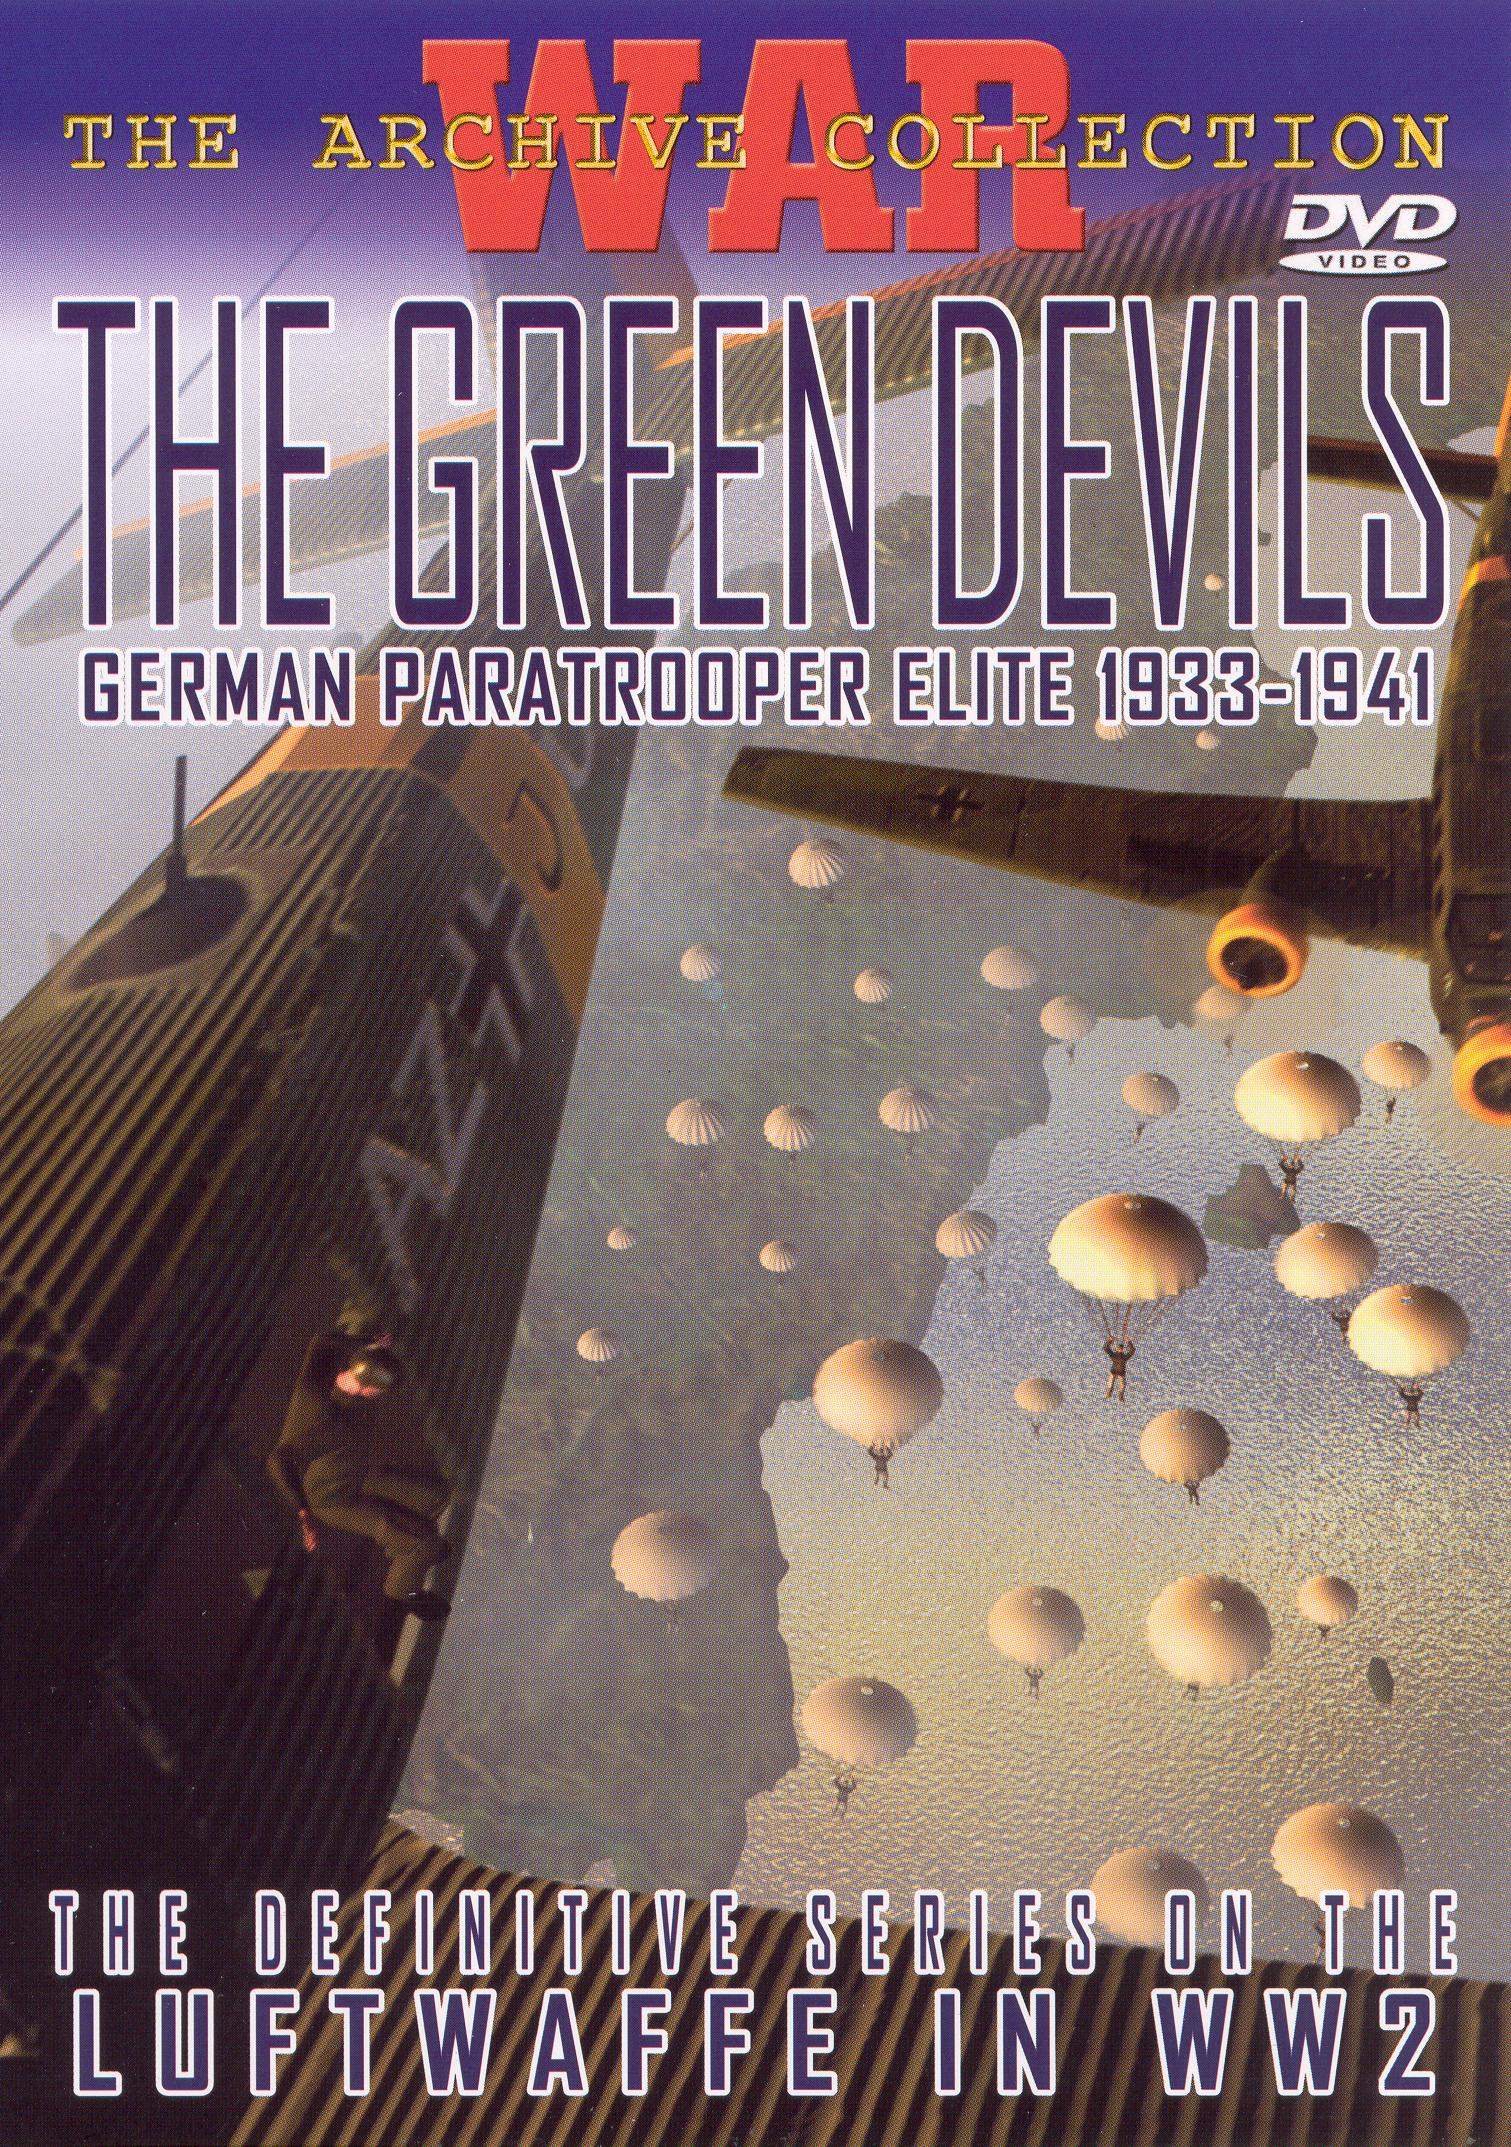 The Green Devils: The German Paratrooper Elite 1933-1941